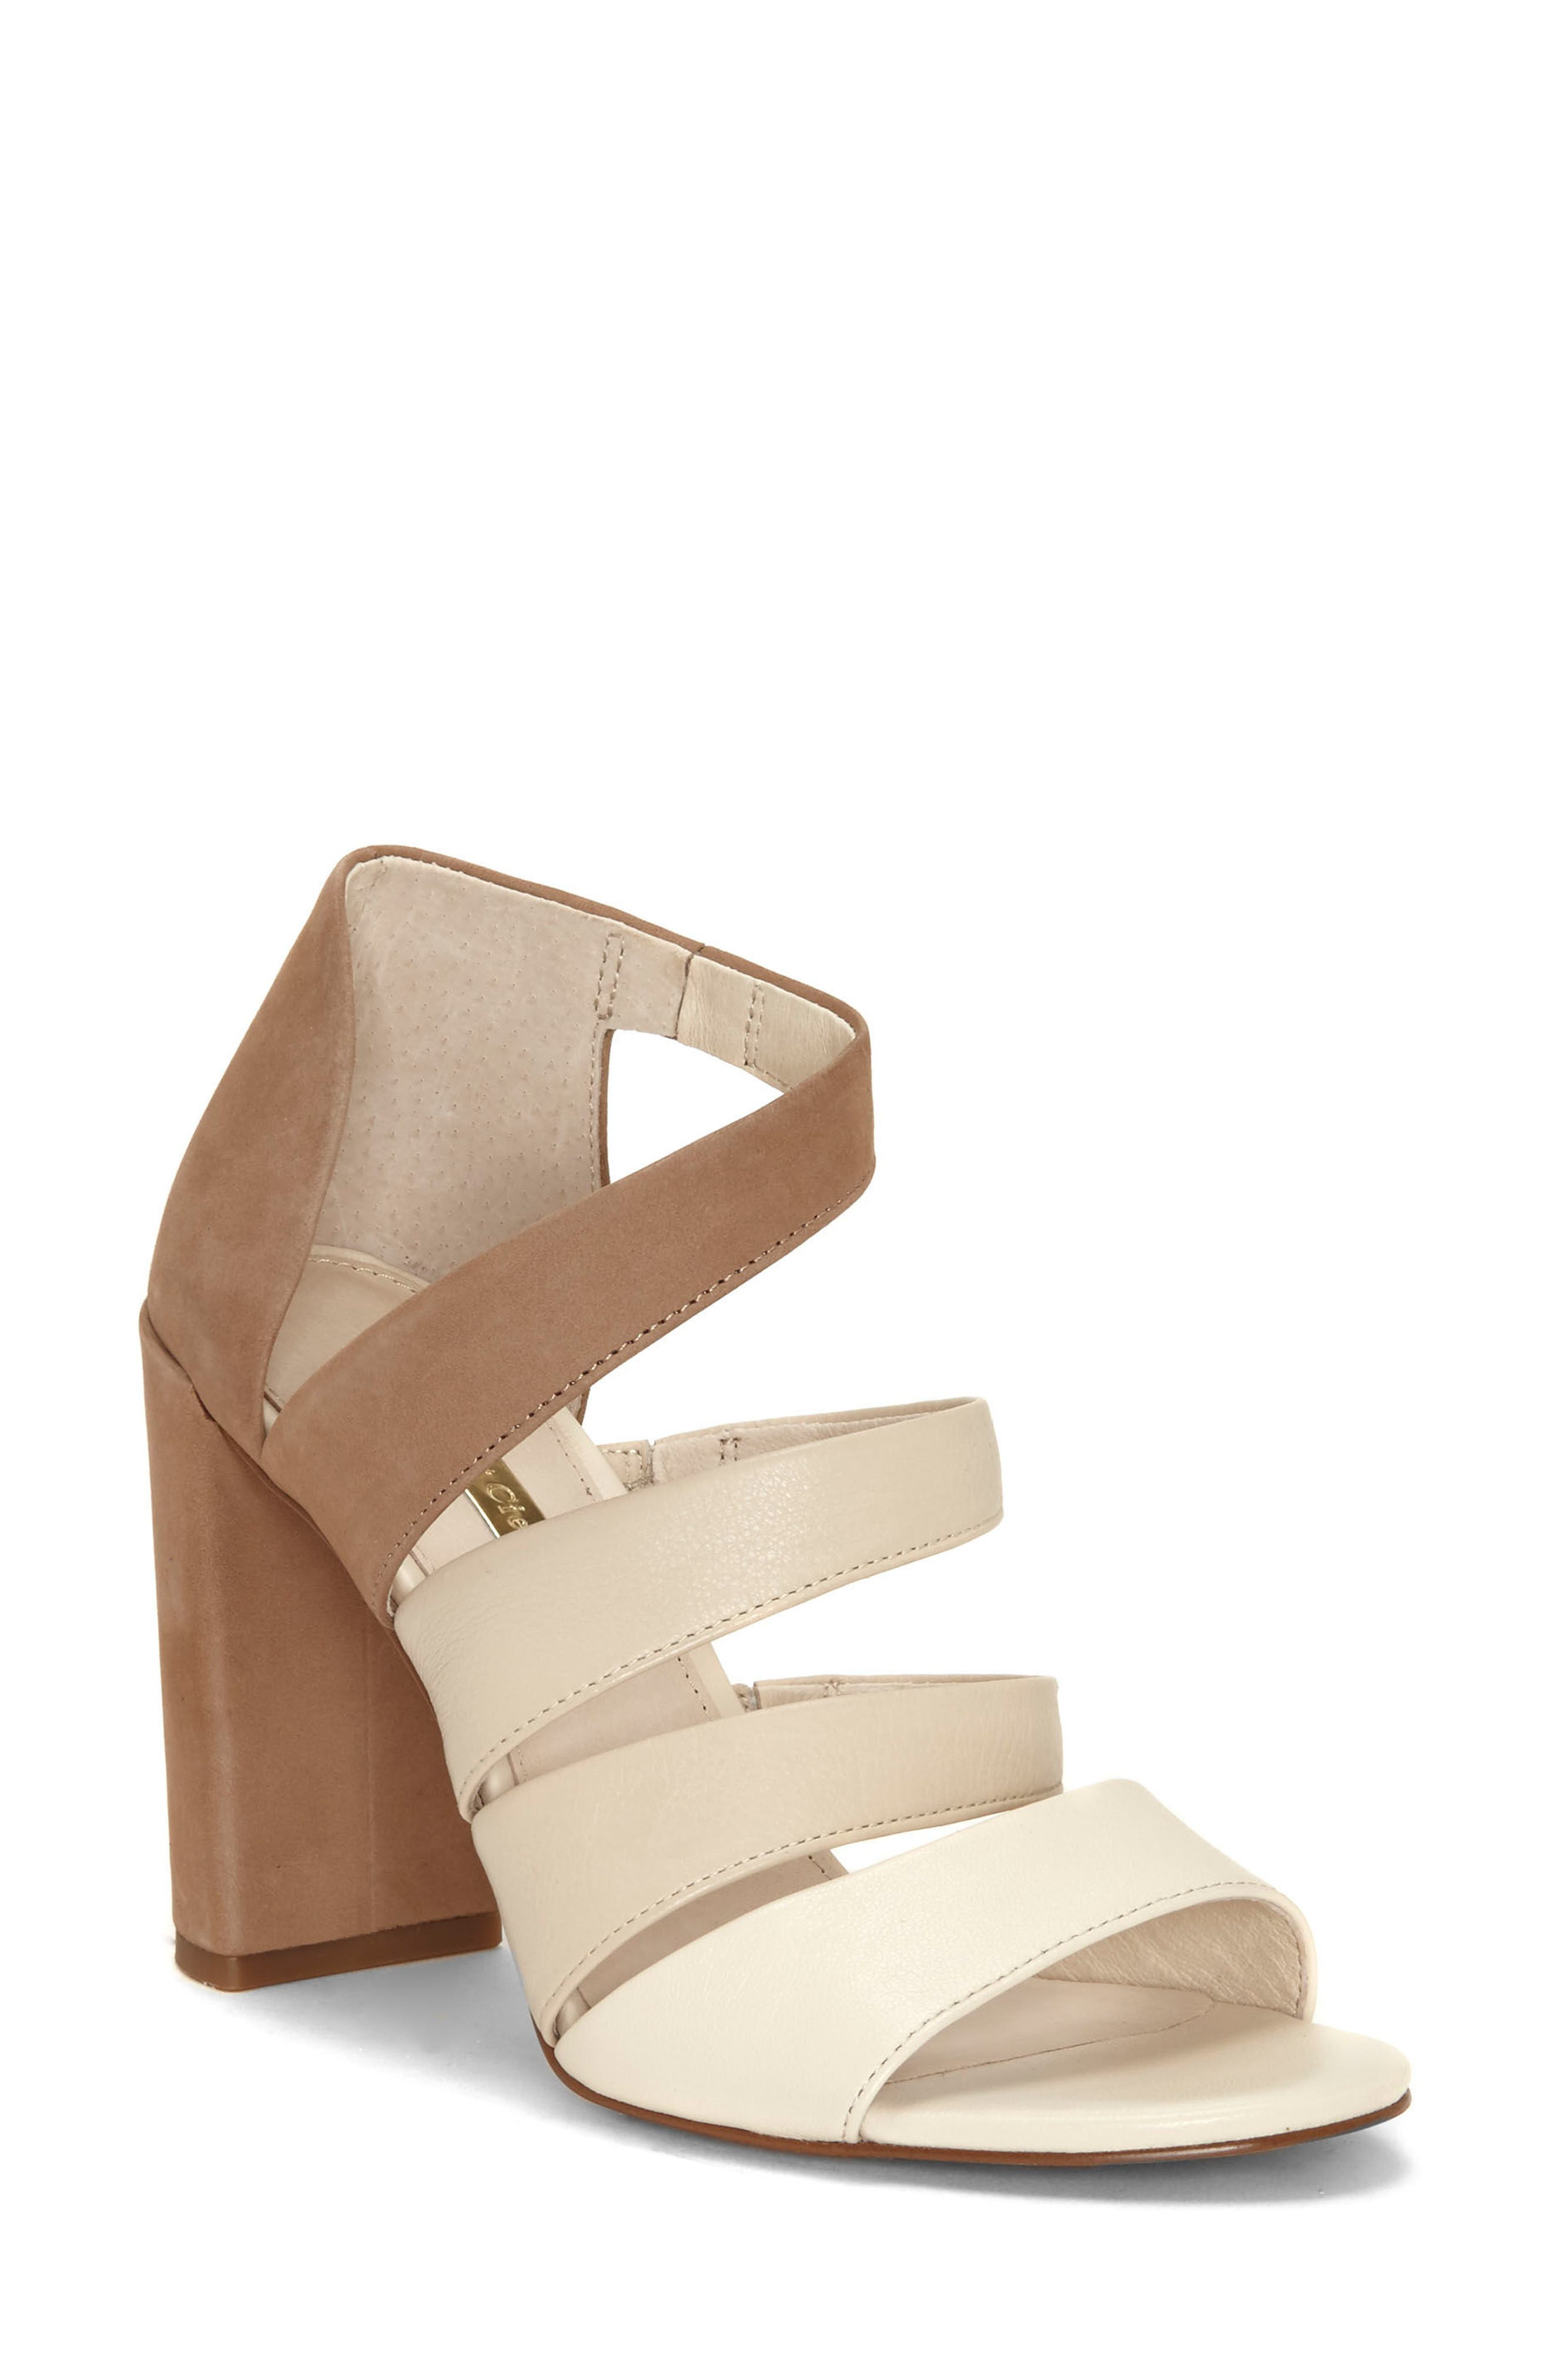 Kainey Strappy Sandal,                             Main thumbnail 2, color,